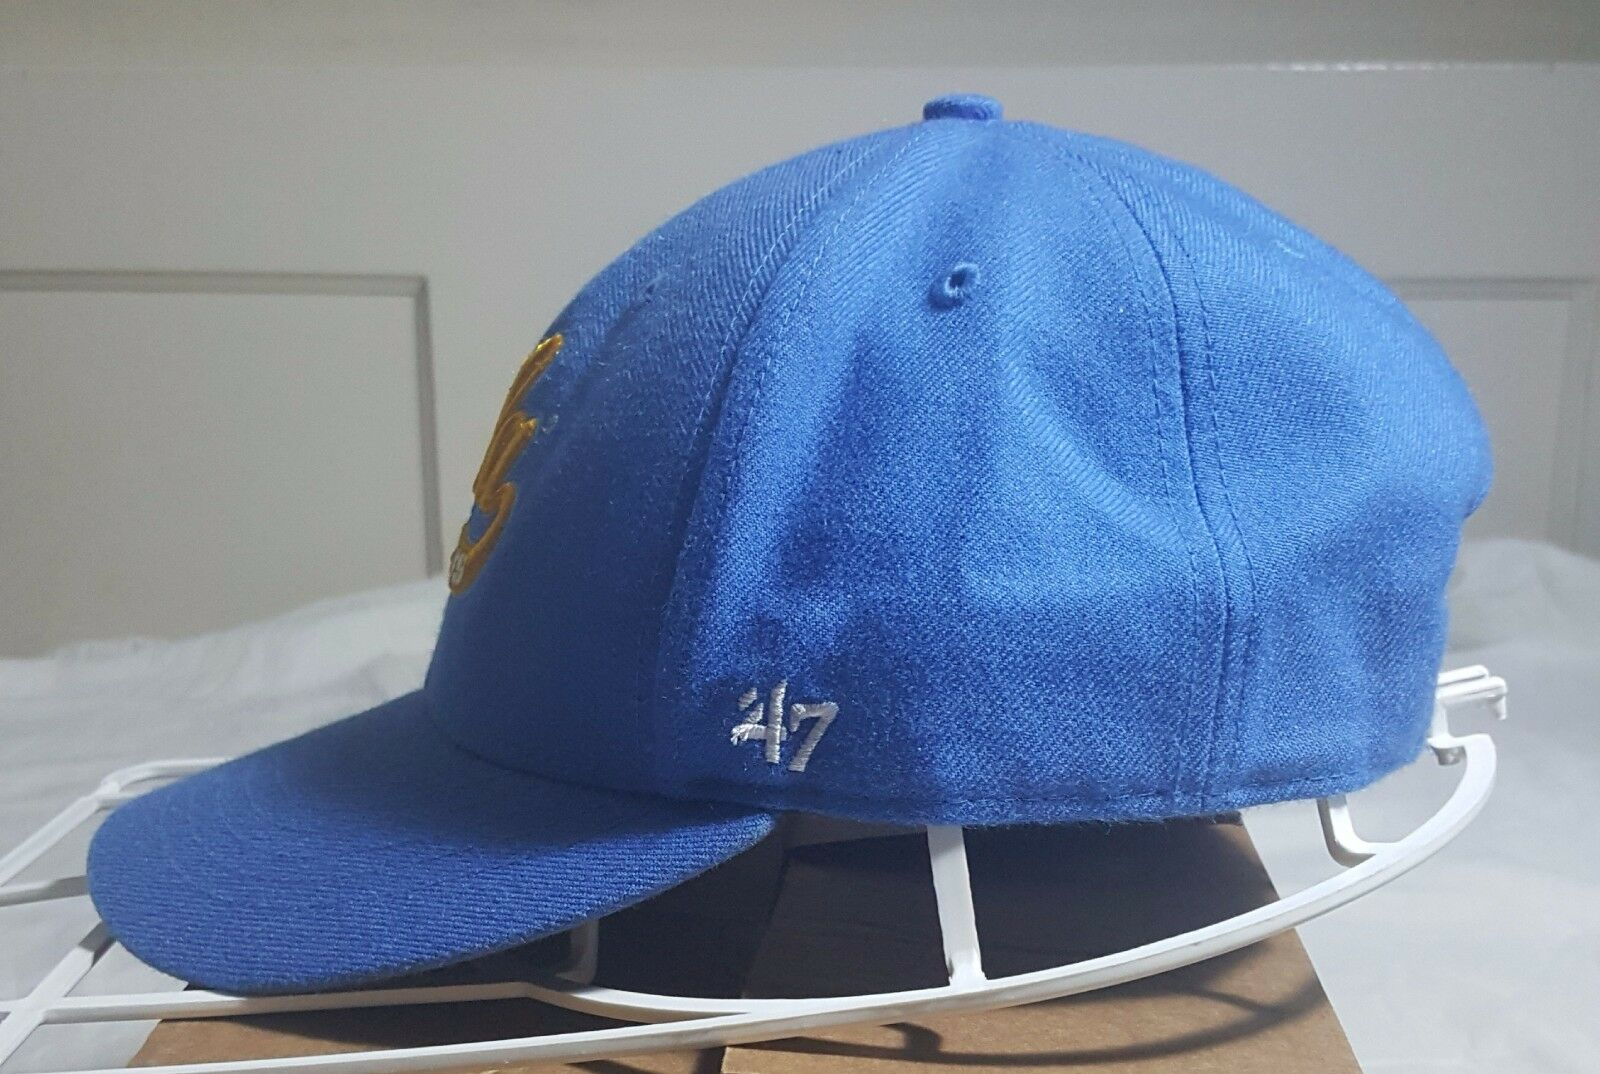 reputable site 4e898 2c305 ... norway ucla bruins strapback dad hat of cap 47 brand university of hat  california los angeles ...